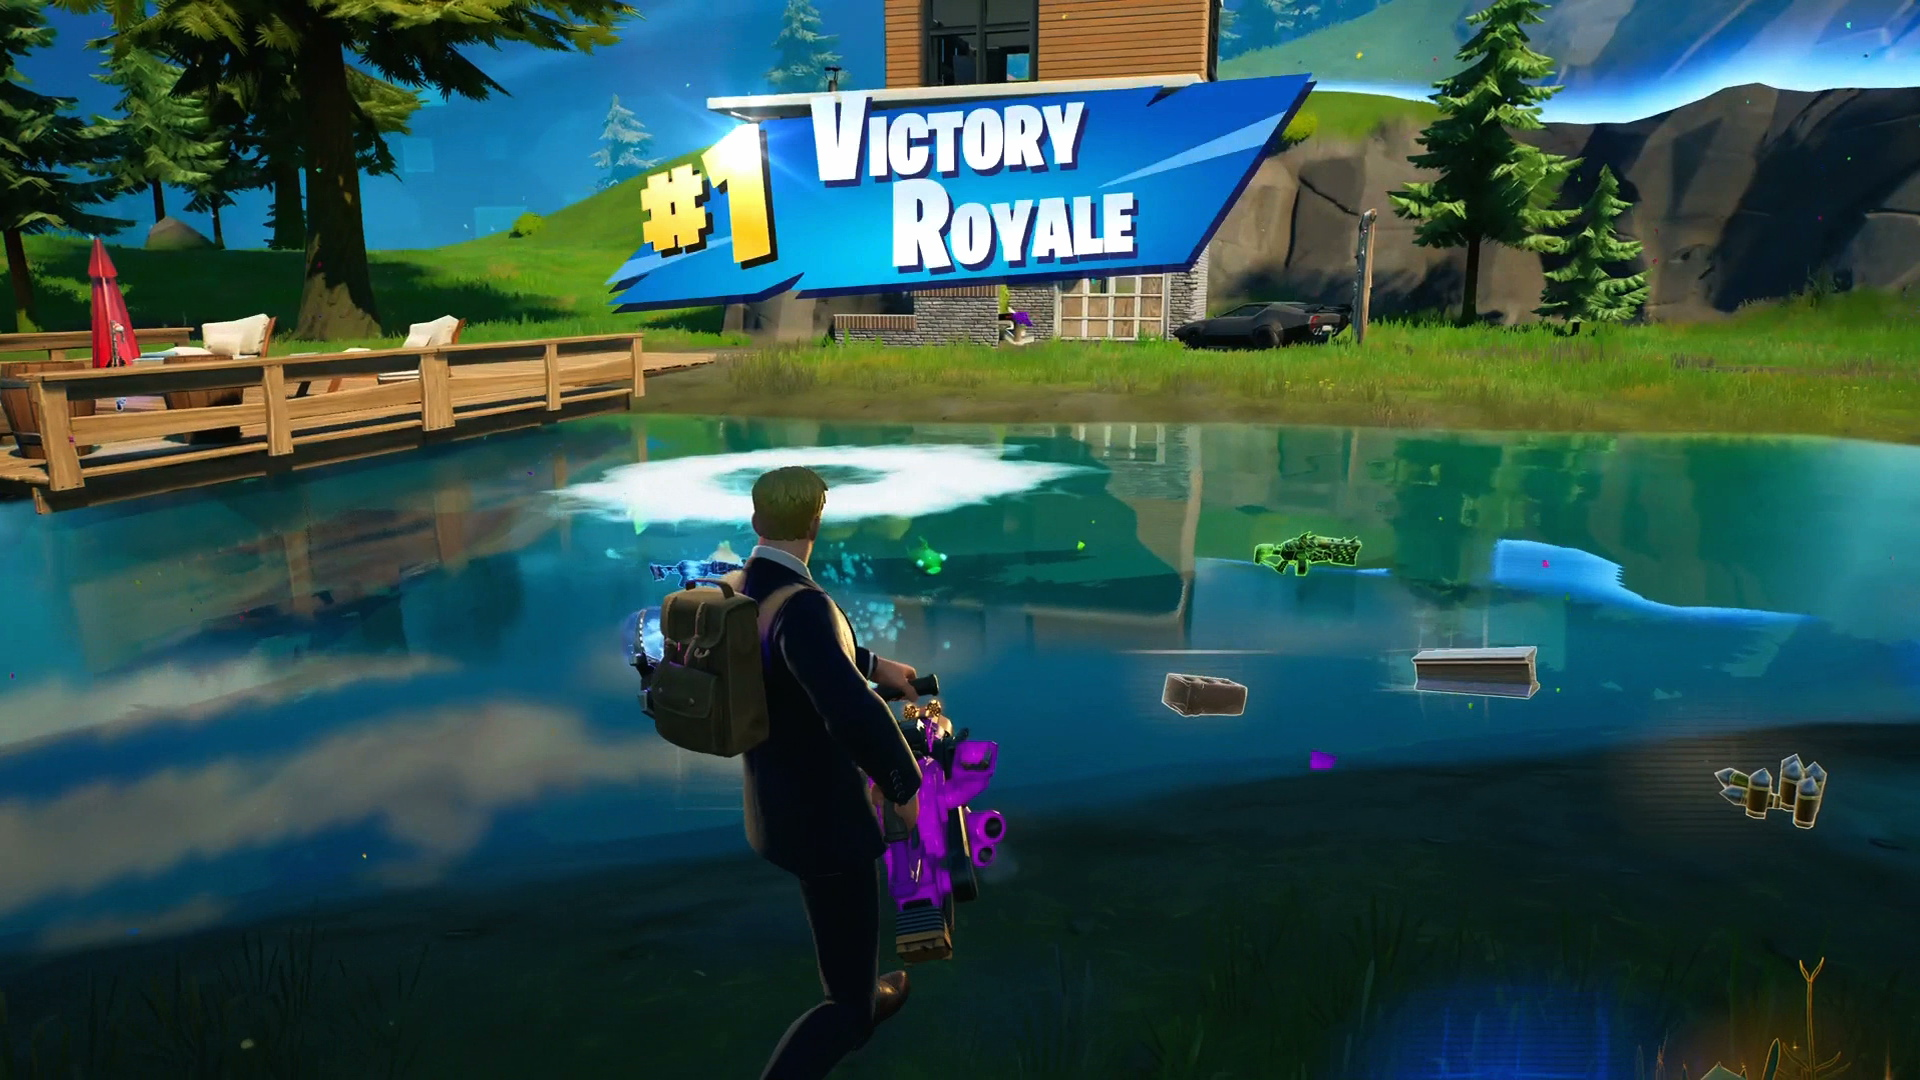 New Material In Fortnite Fortnite Tips To Earn A Victory Royale Gamesradar